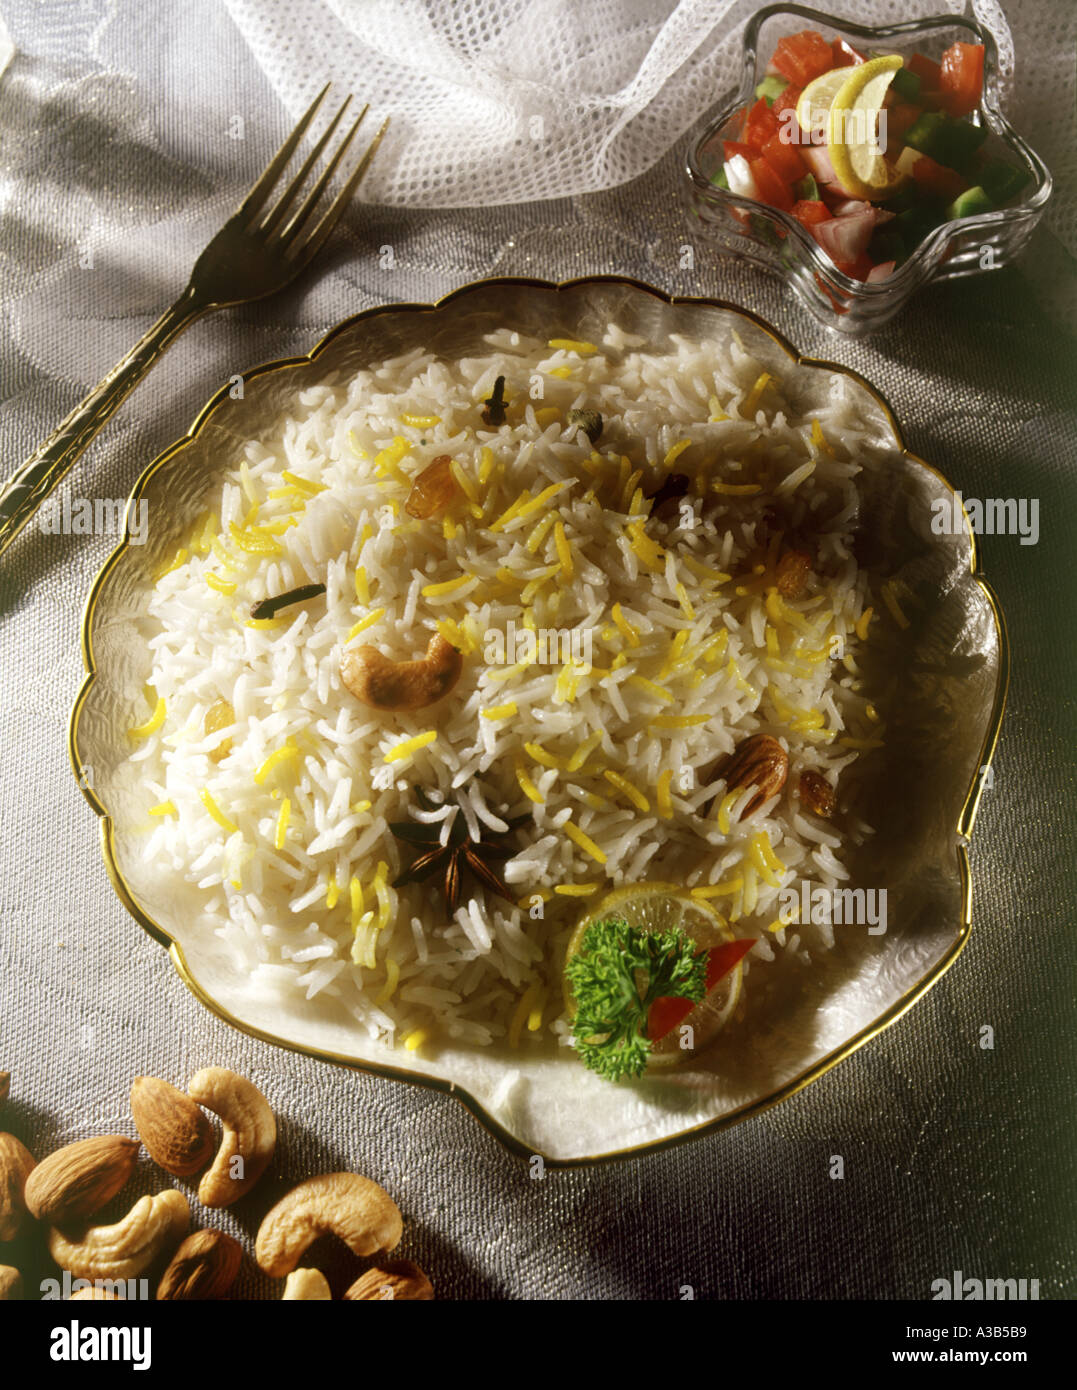 Cuisine India Vegetarian Rice Topped With Seasoned Vegetables Indian Cuisine